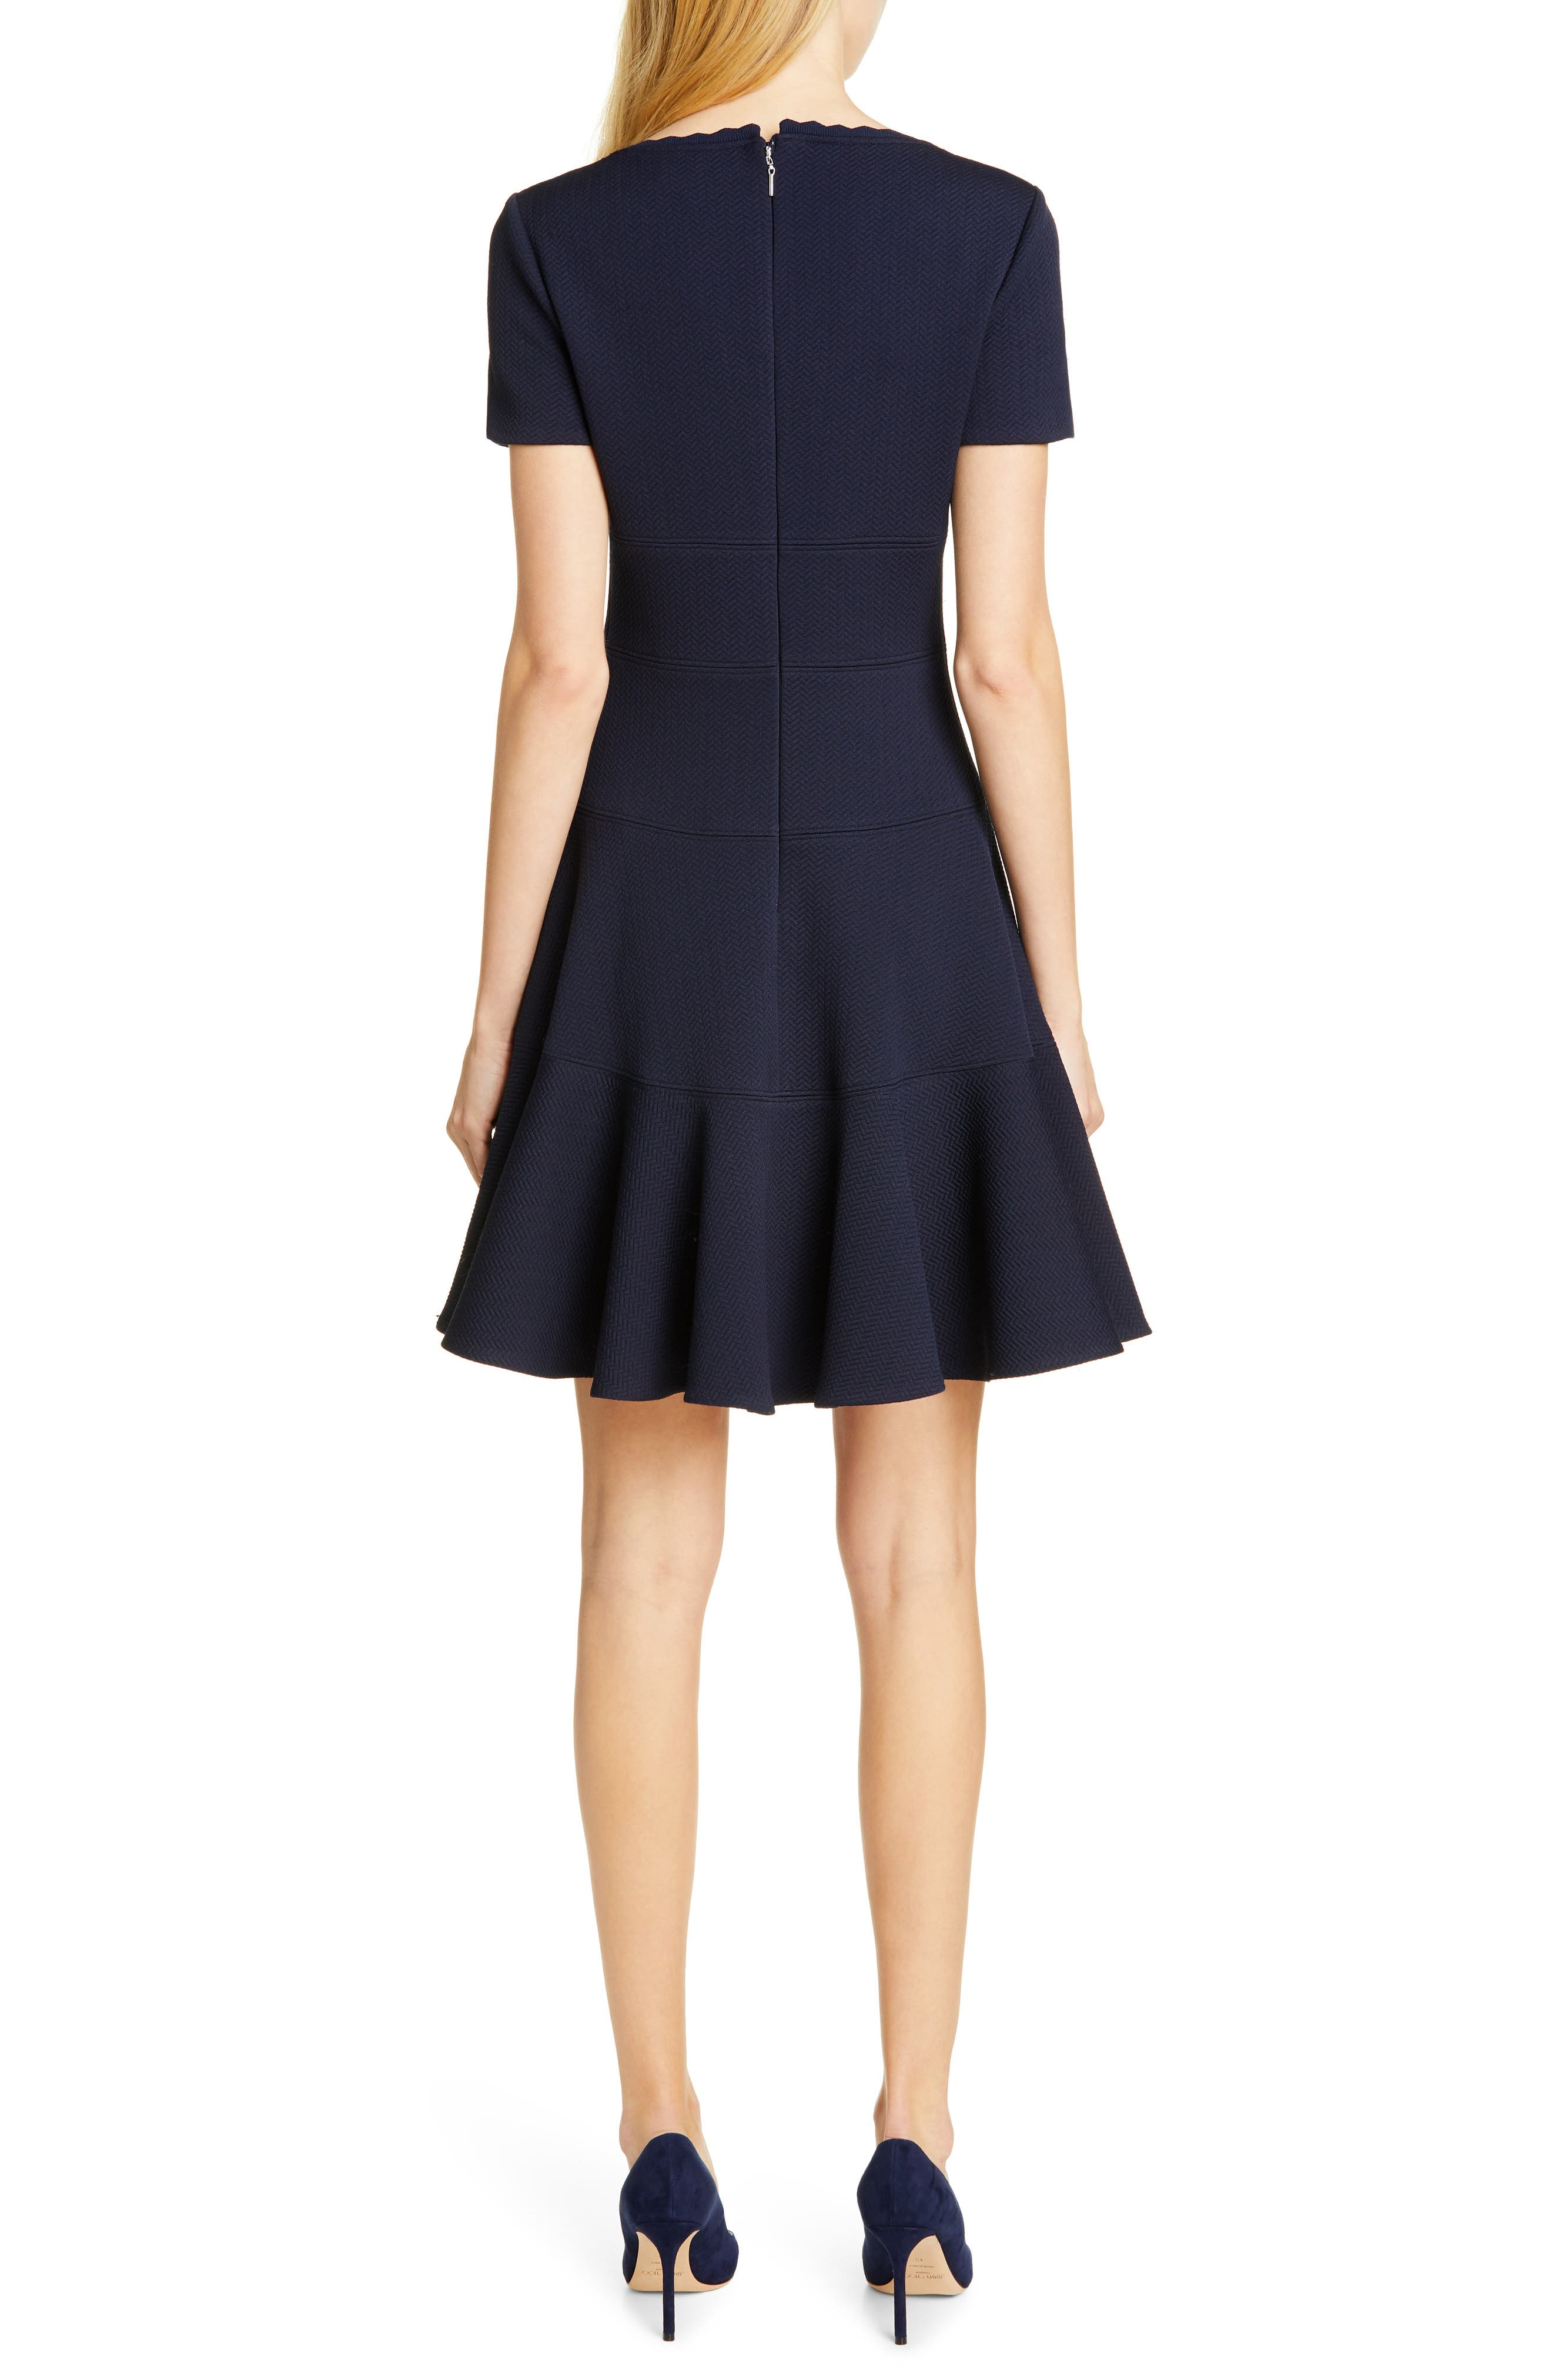 REBECCA TAYLOR, Textured Scallop Detail Fit & Flare Dress, Alternate thumbnail 2, color, NAVY